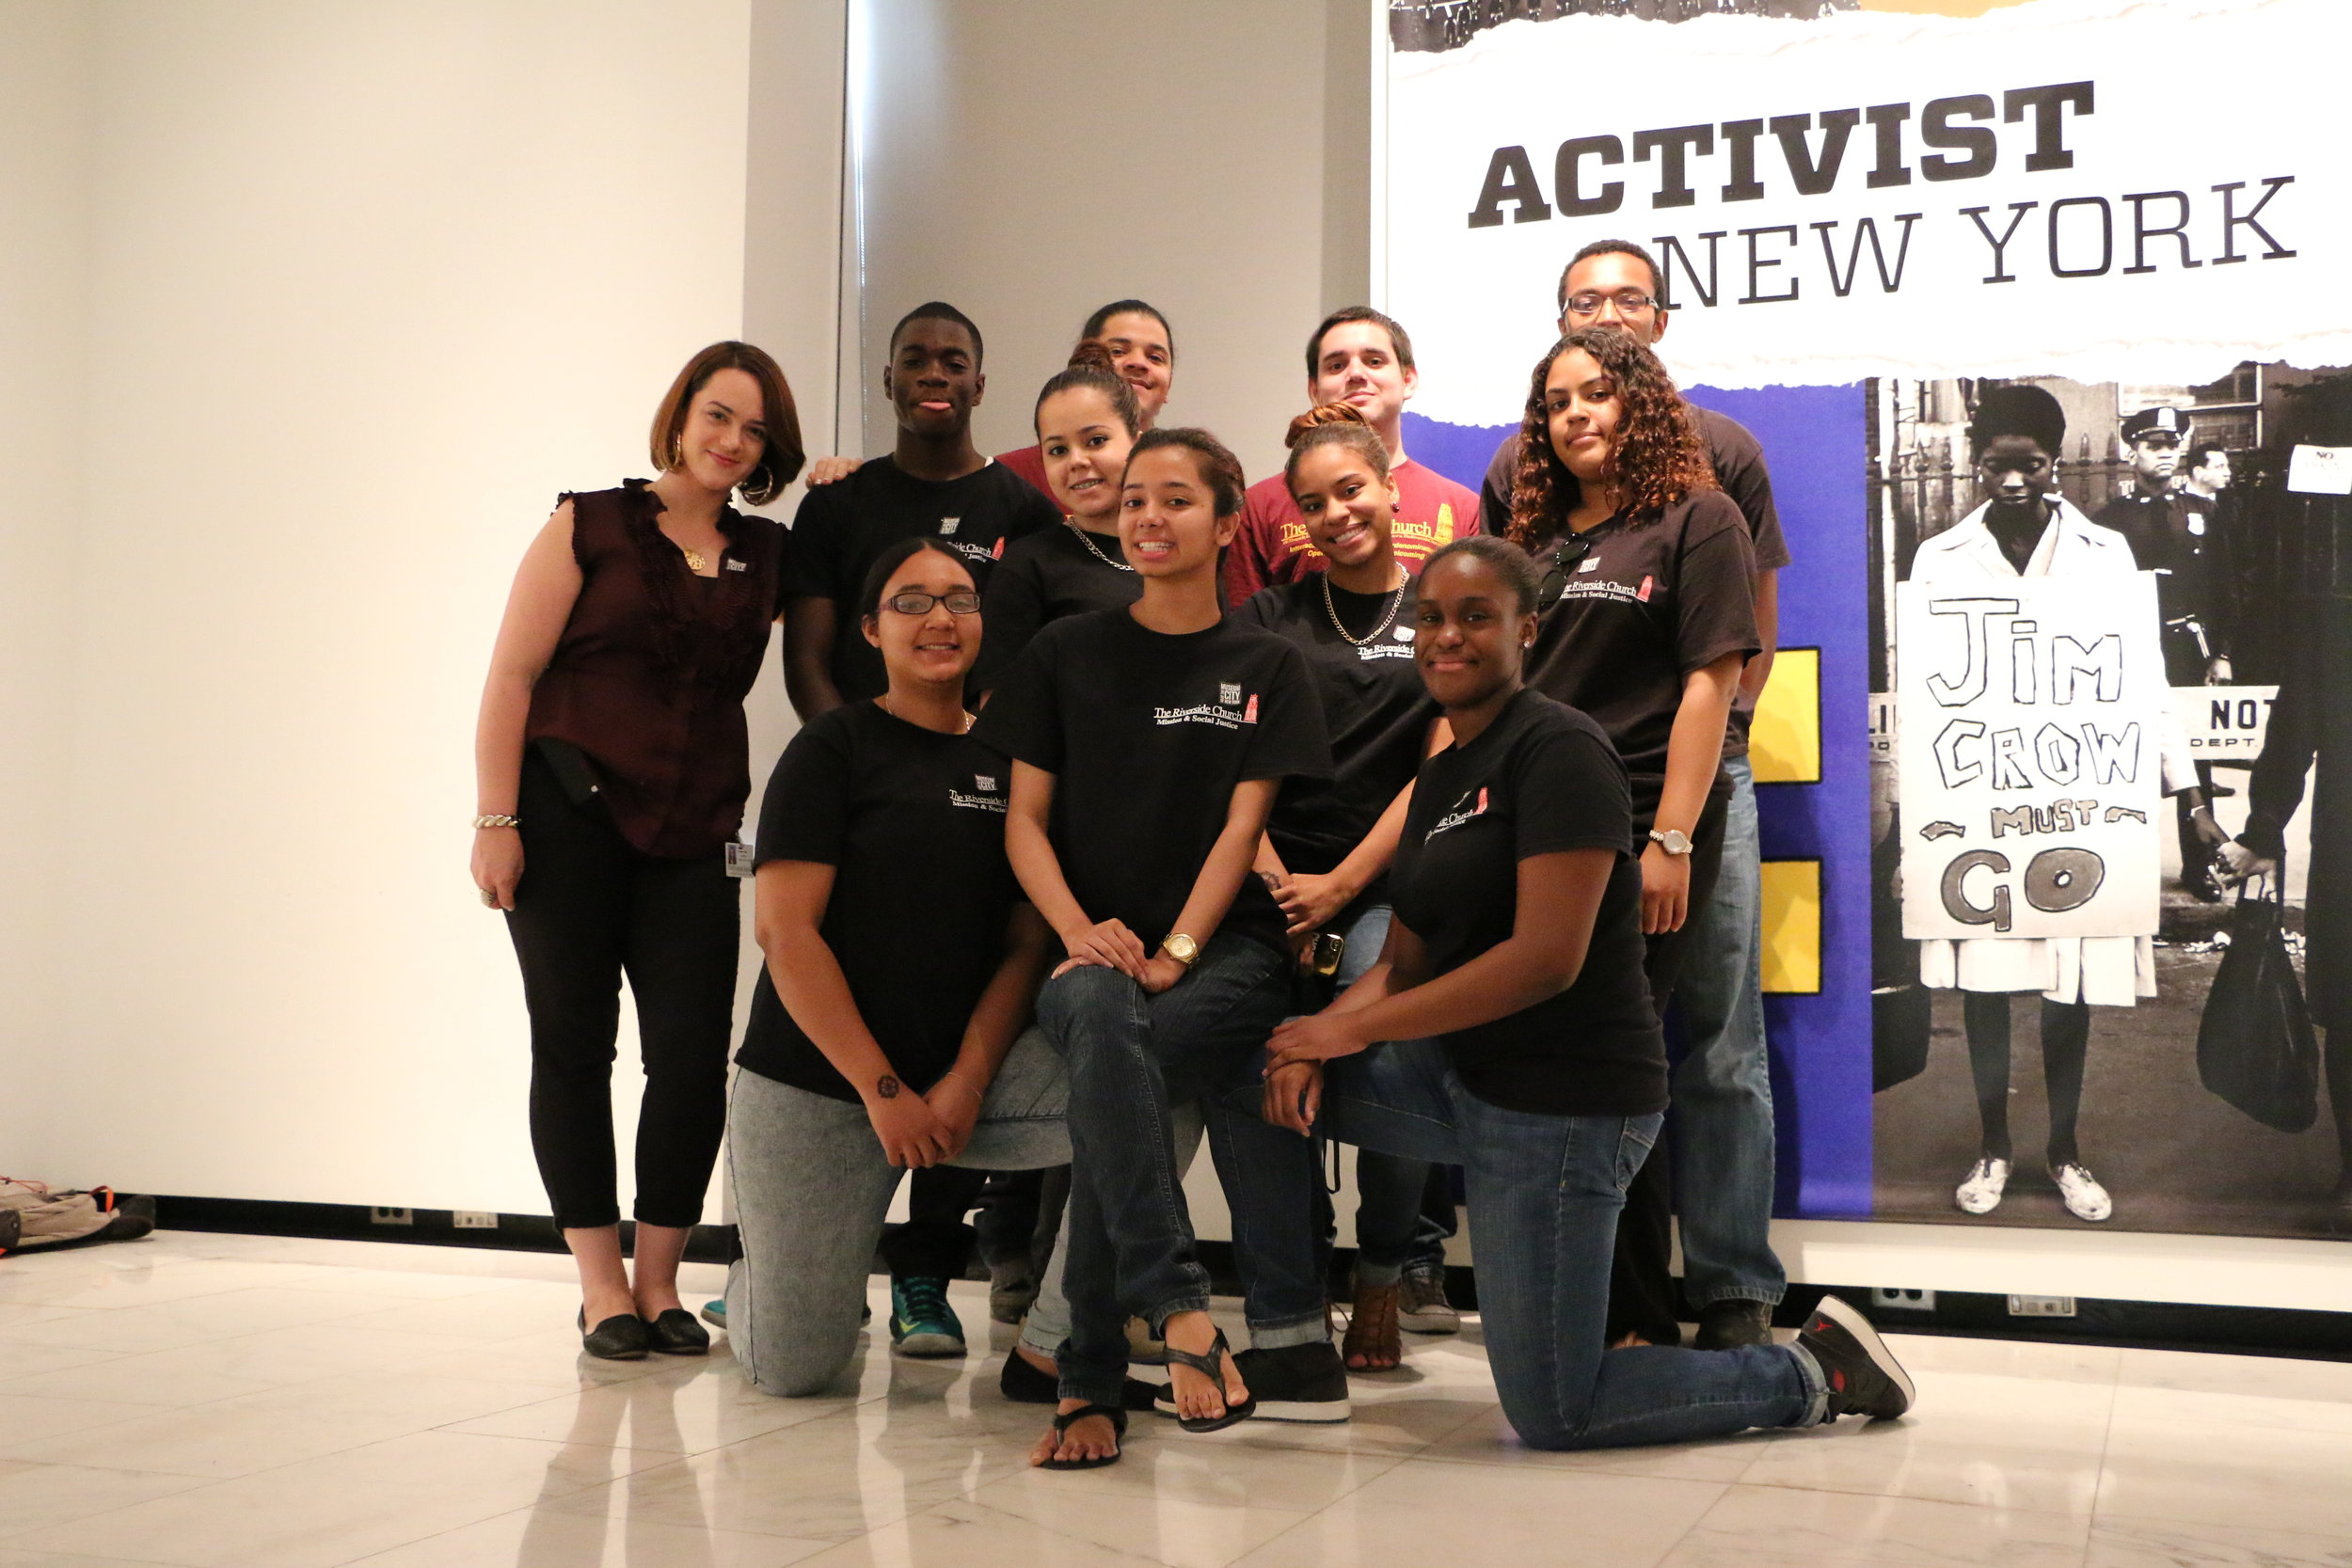 Summer Youth Employment Program (SYEP) Participants learning about Activism.